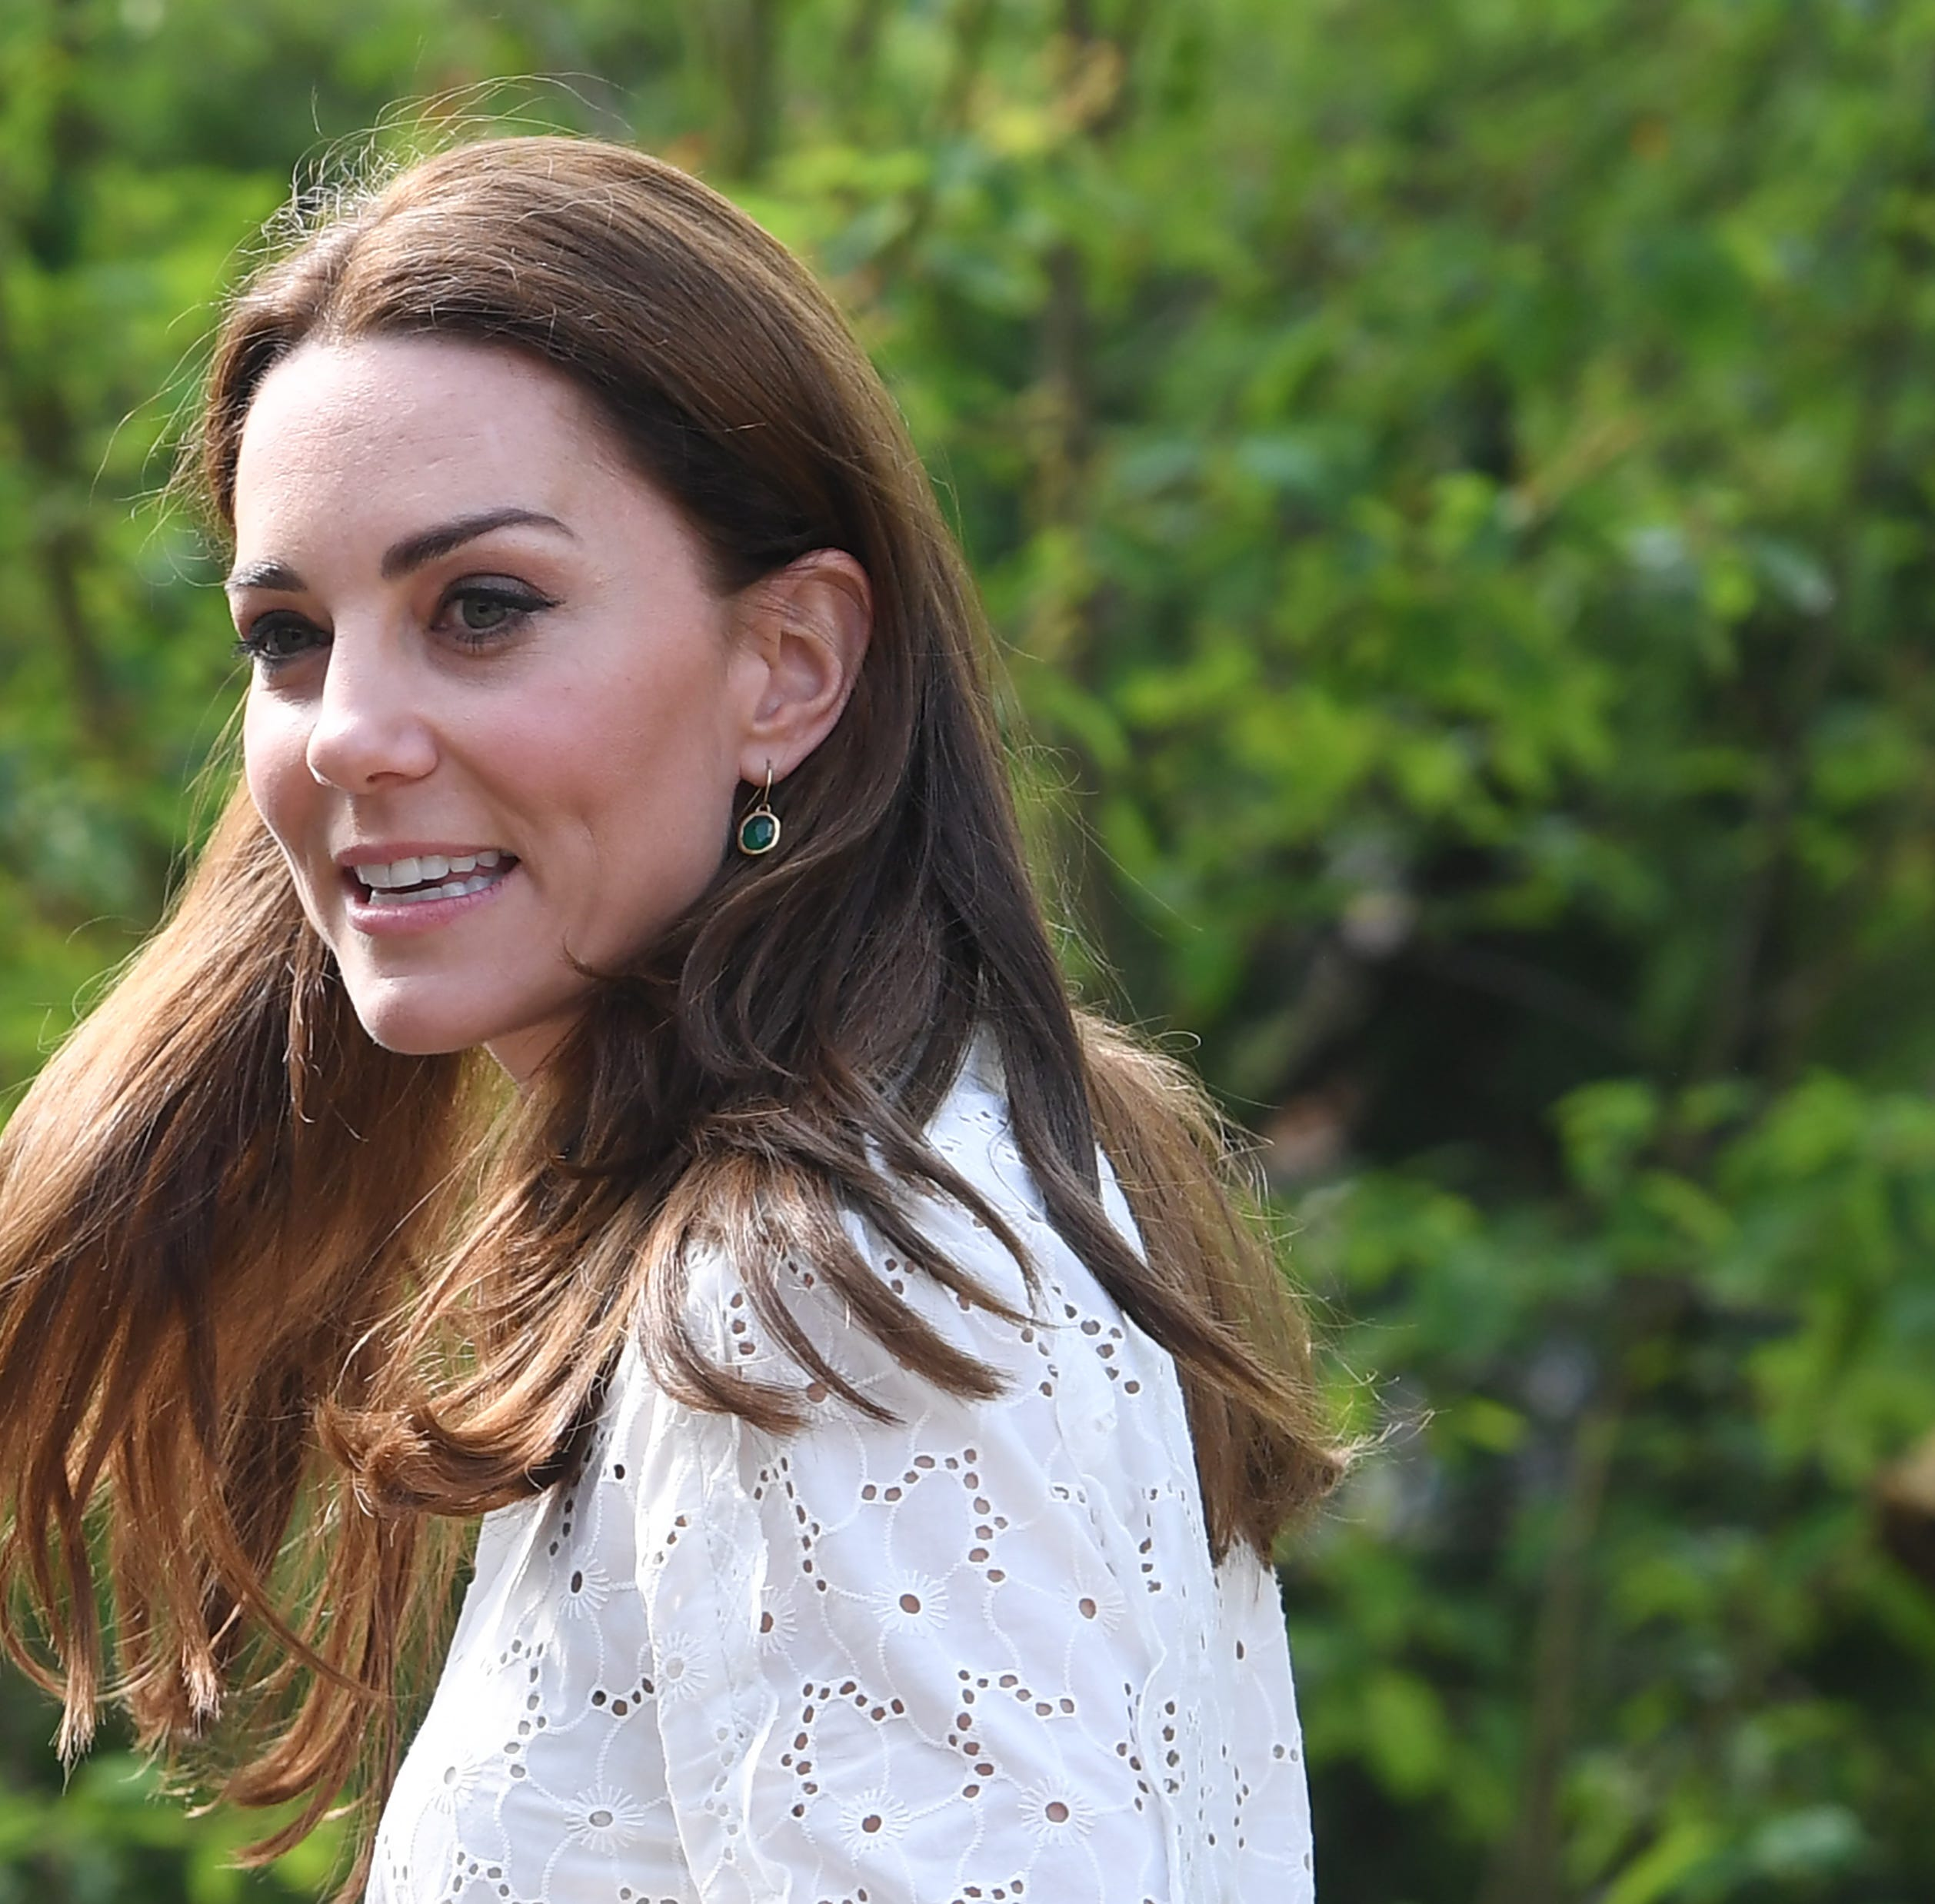 Kate, The Duchess of Cambridge visits the Adam White and Andree Davies co-designed 'Back to Nature' garden during the press day for the RHS Chelsea Flower Show in London, Britain on May 20, 2019.